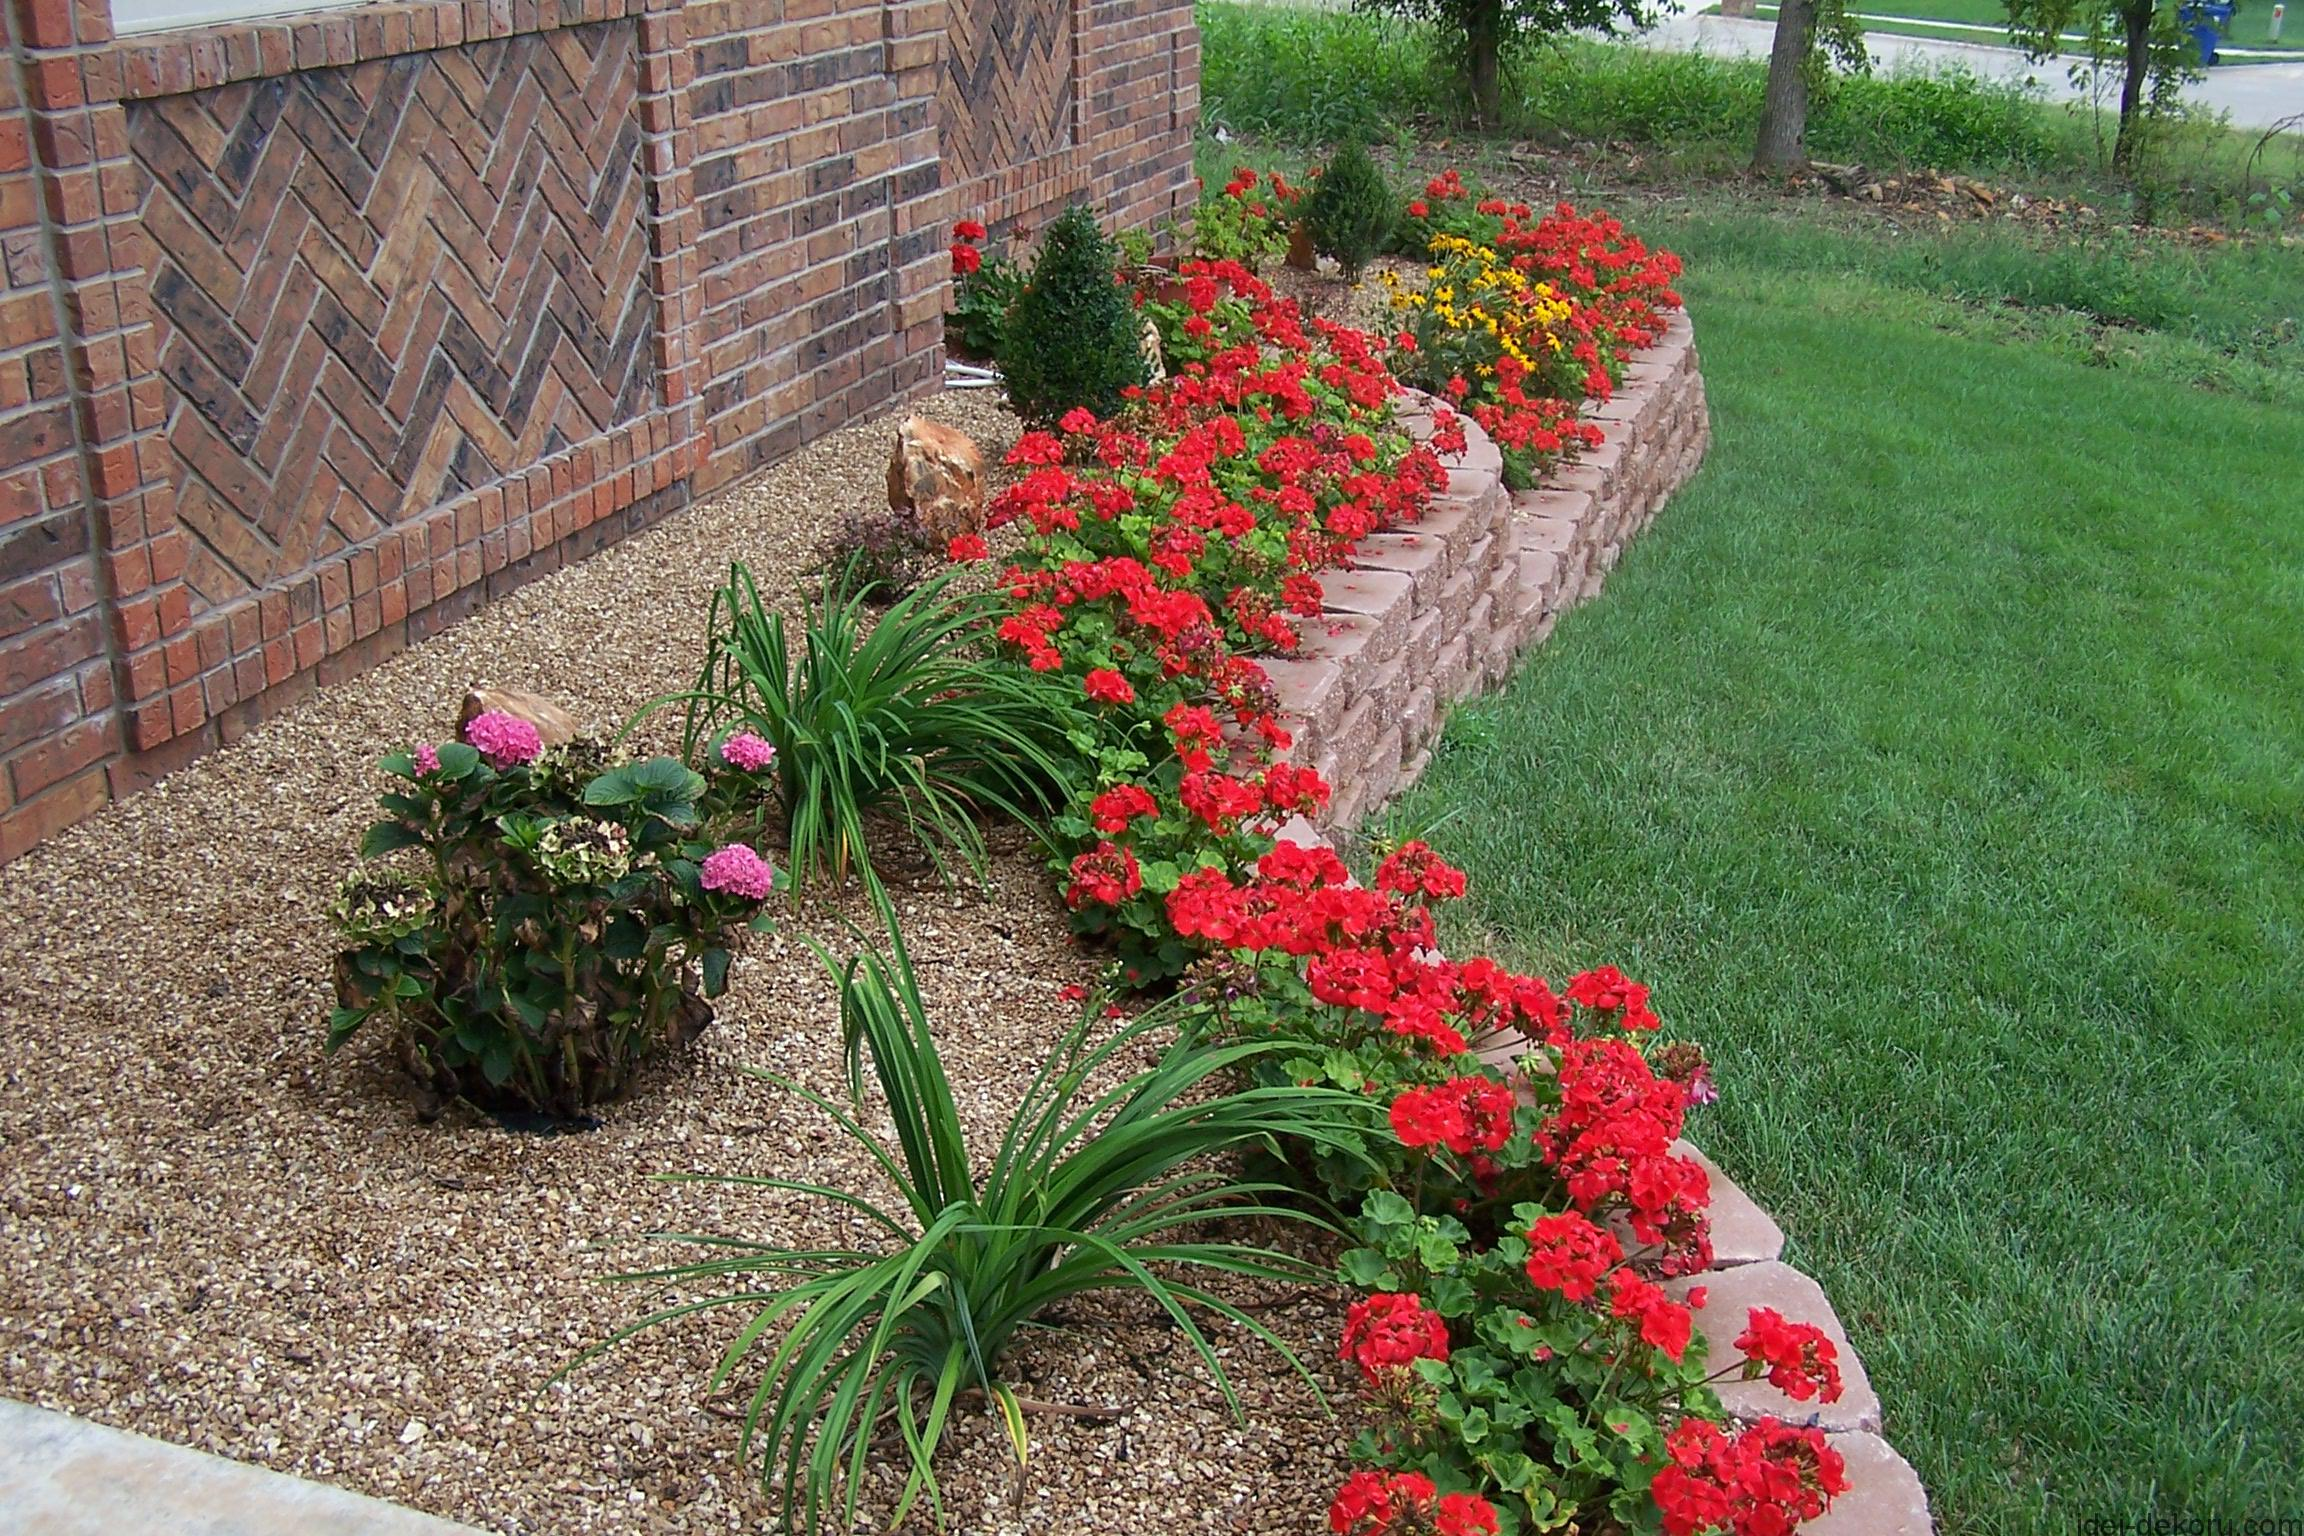 Spring-Home-Special-Must-Have-Renovation-Tips-The-Forum-Newsgroup-home-flower-garden-tips-